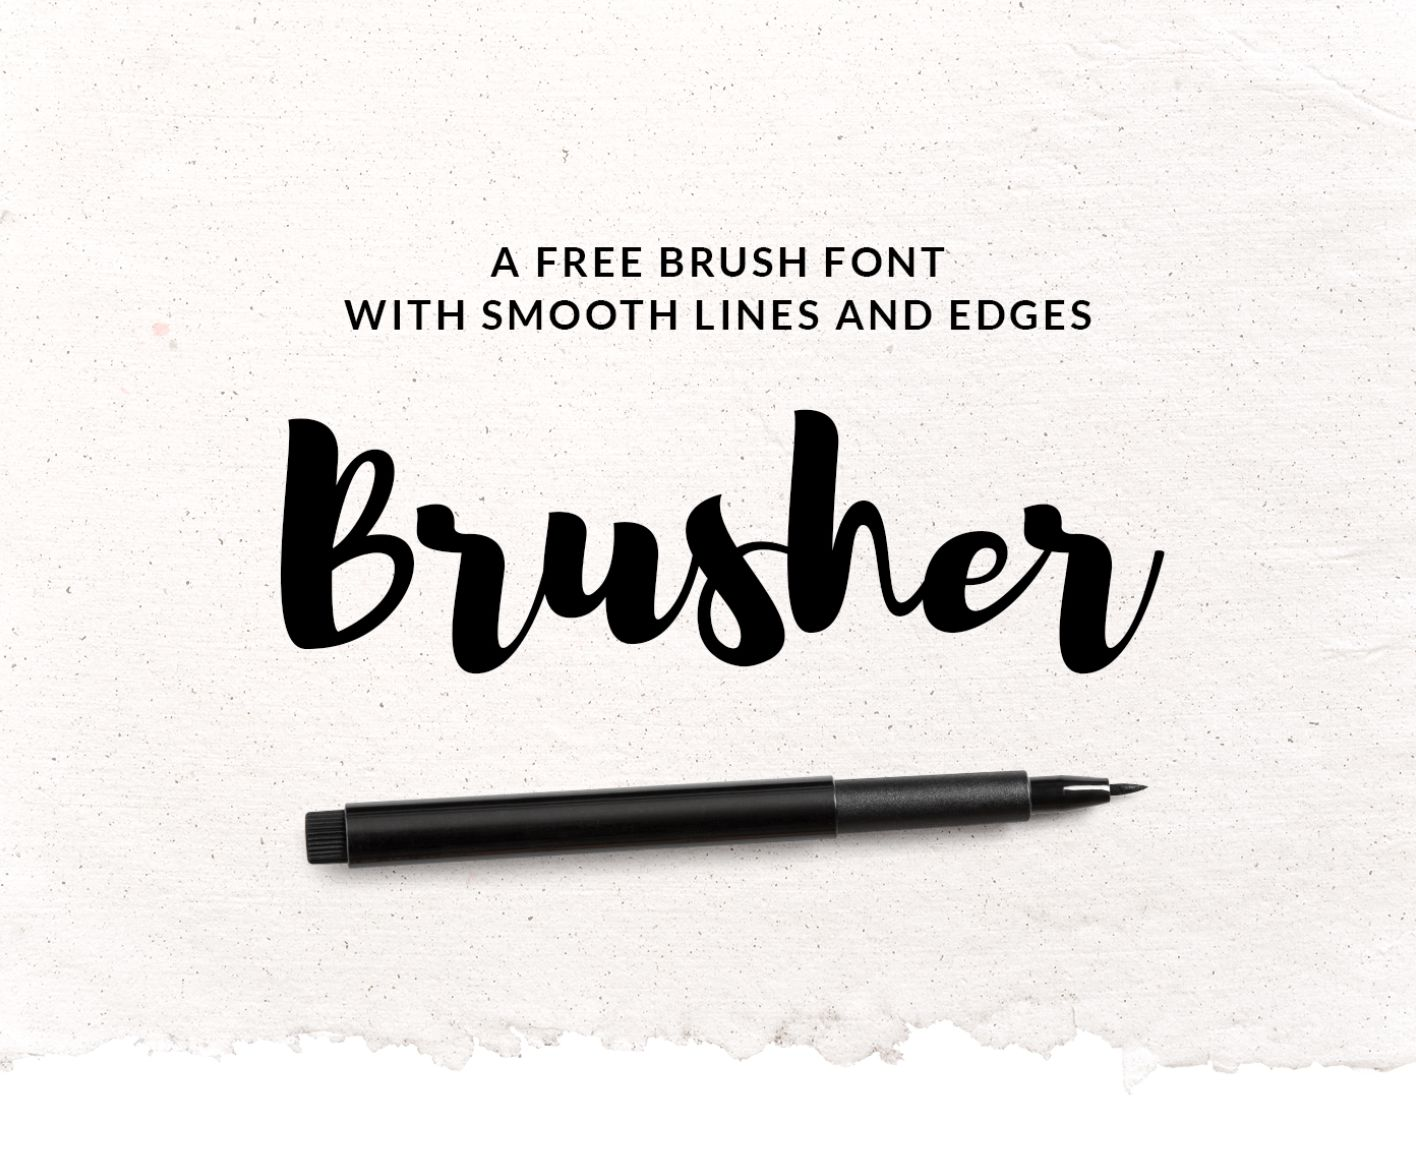 Brusher Free Font on Behance